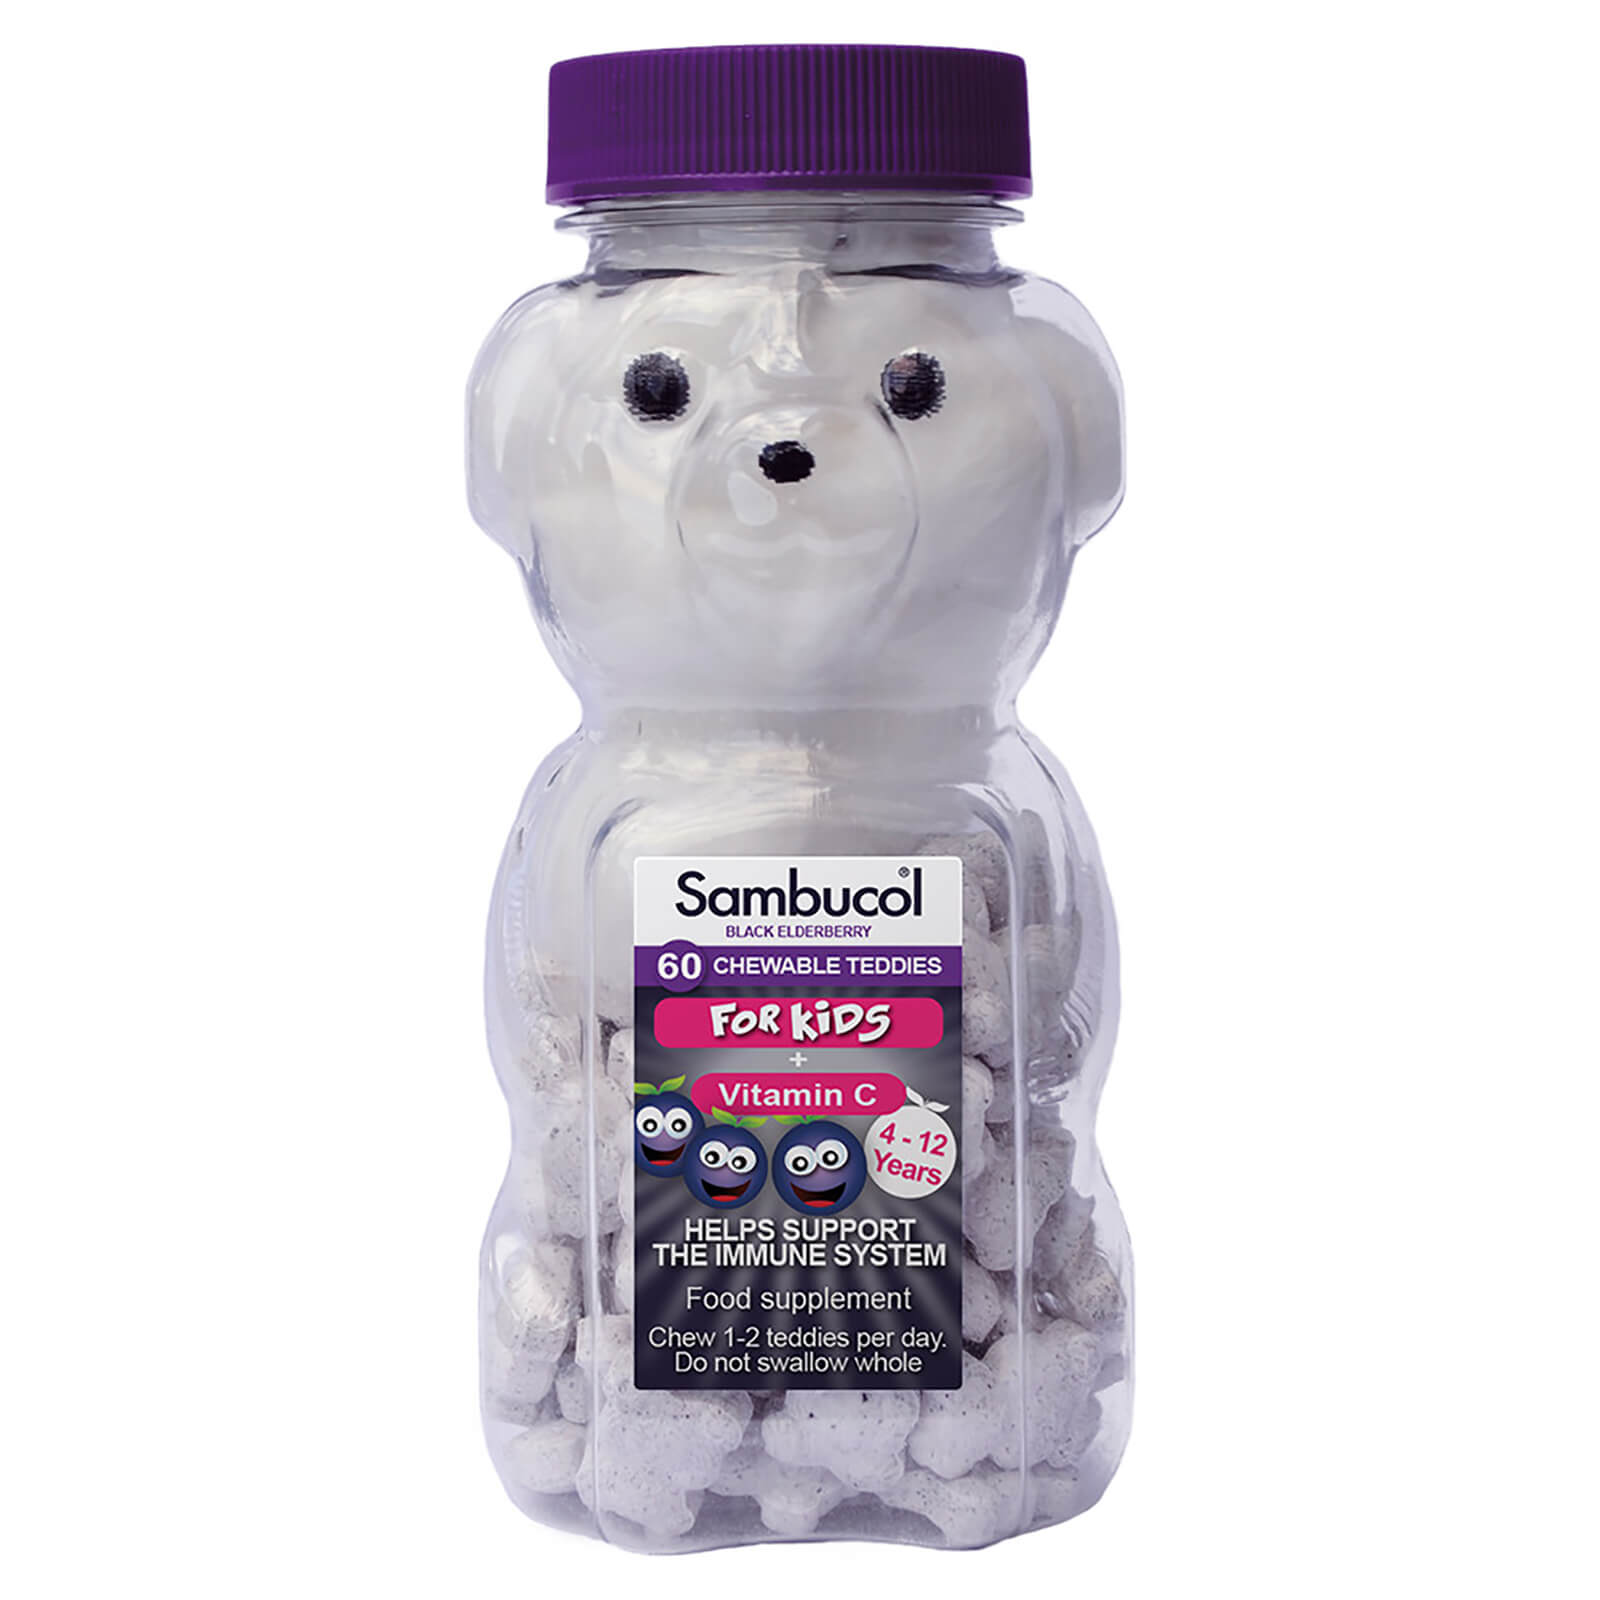 Sambucol Chewable Teddies for Kids (UK Version), 60 chewable. *Authorised Exclusive Distributor